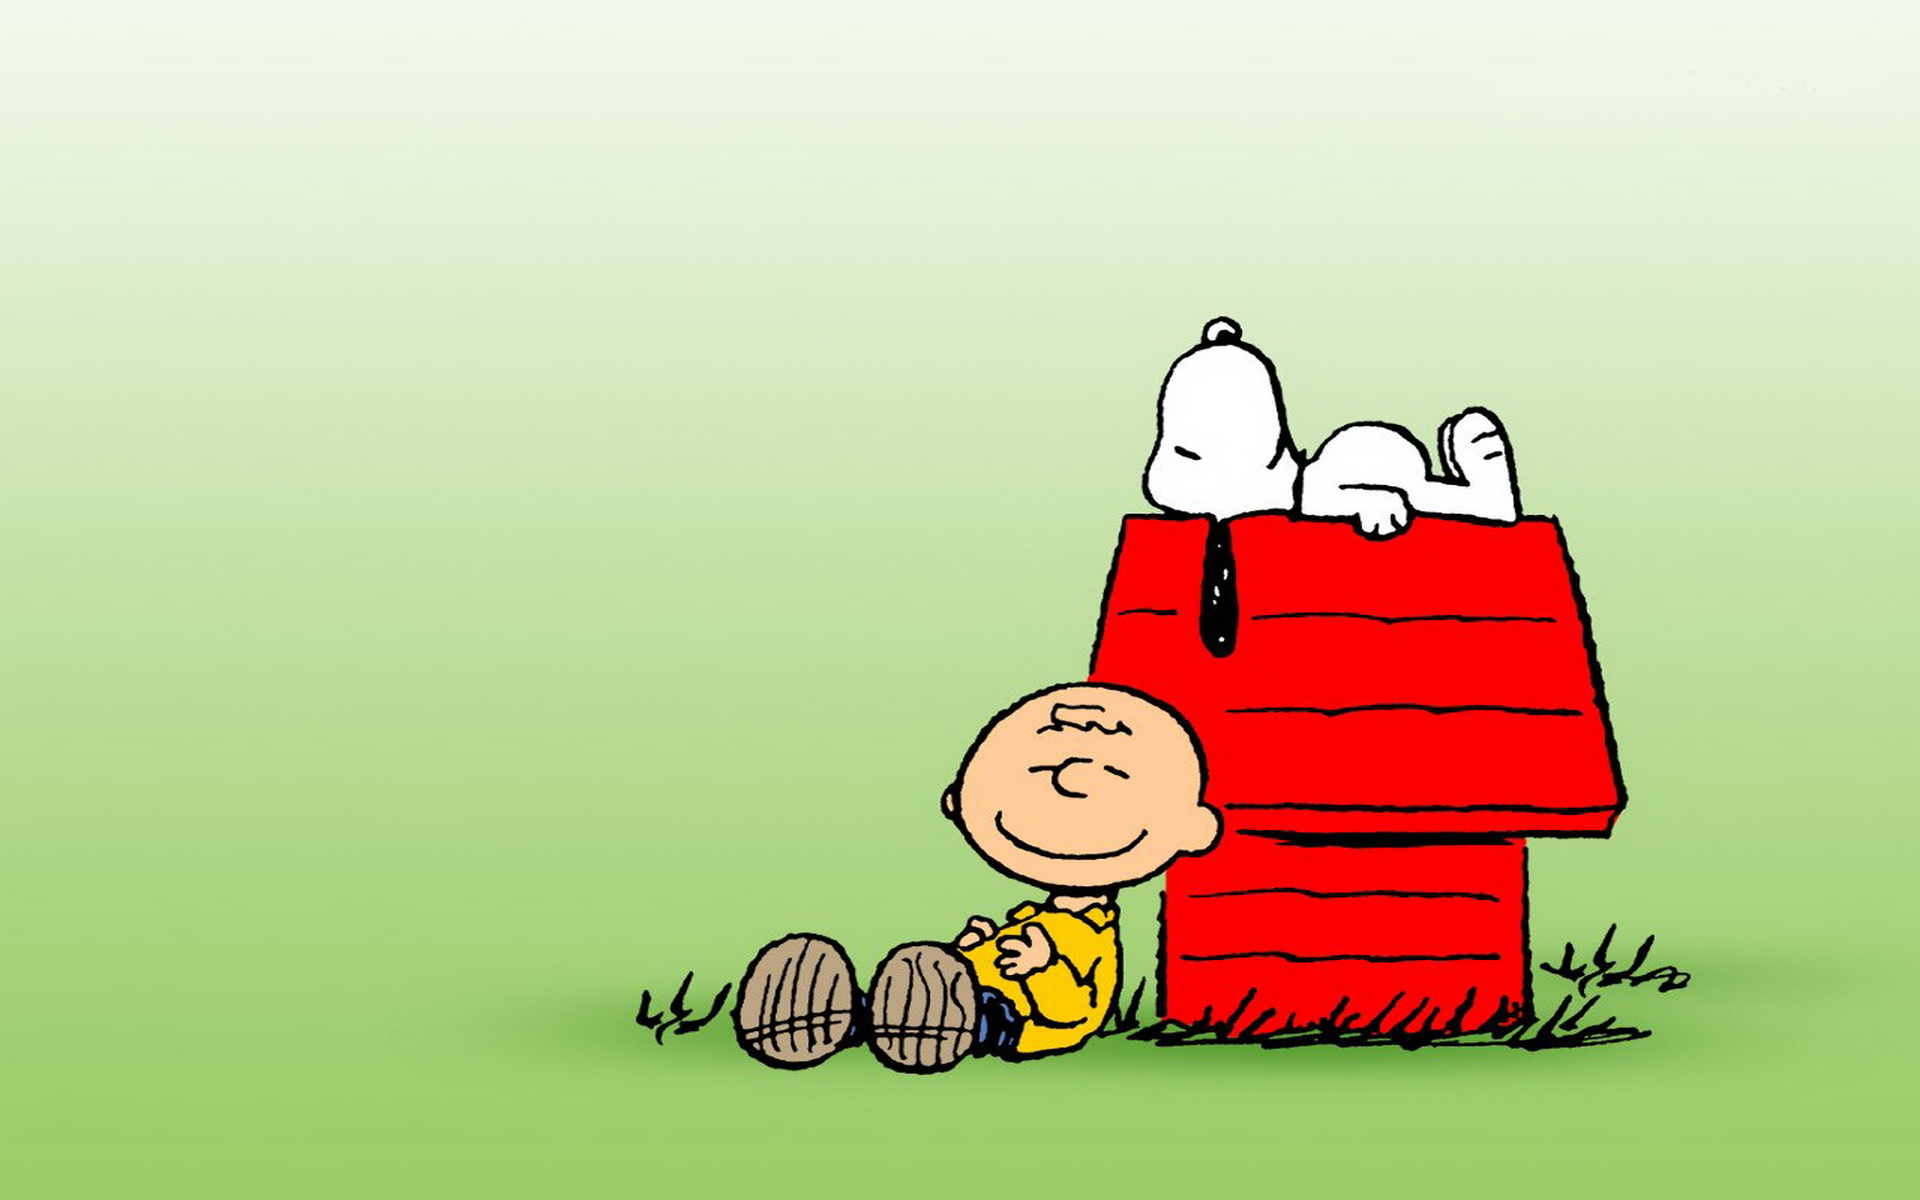 CHARLIE BROWN peanuts comics snoopy g wallpaper background 1920x1200